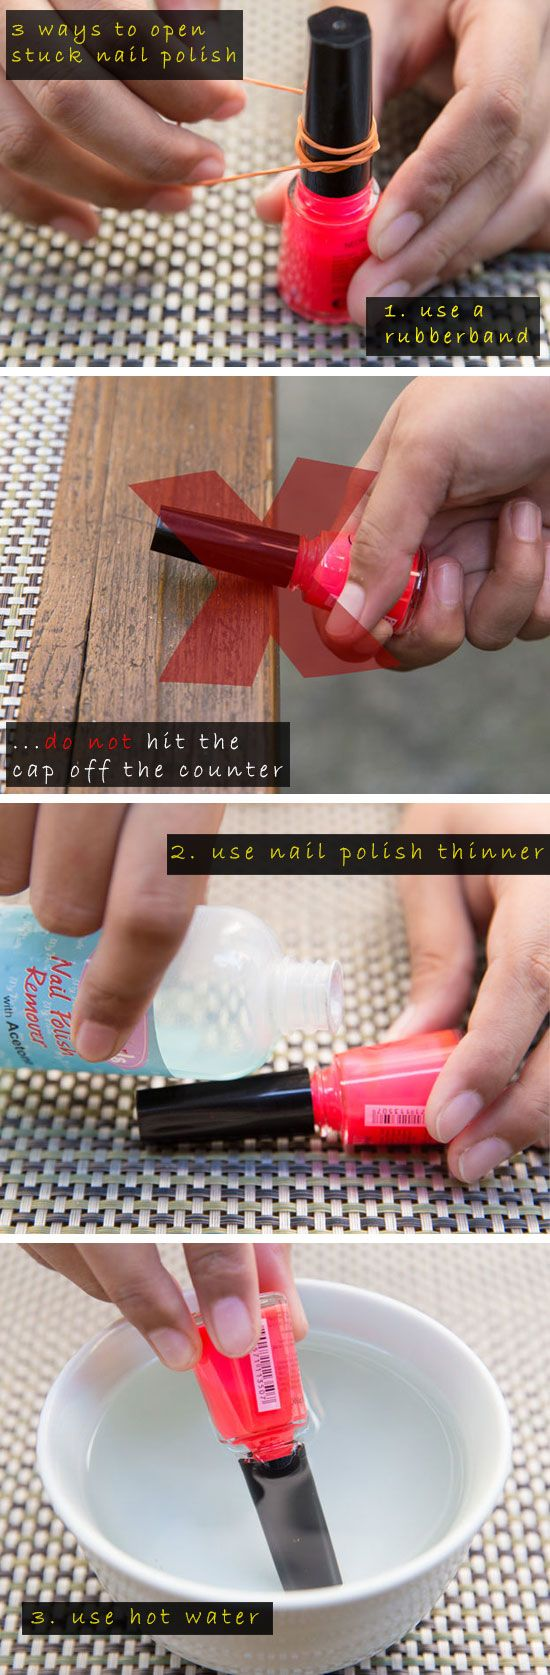 3 Ways to Open a Stuck Bottle of Nail Polish | 21 Life Hacks Every Girl Should Know | Makeup Tips and Tricks Hacks DIY